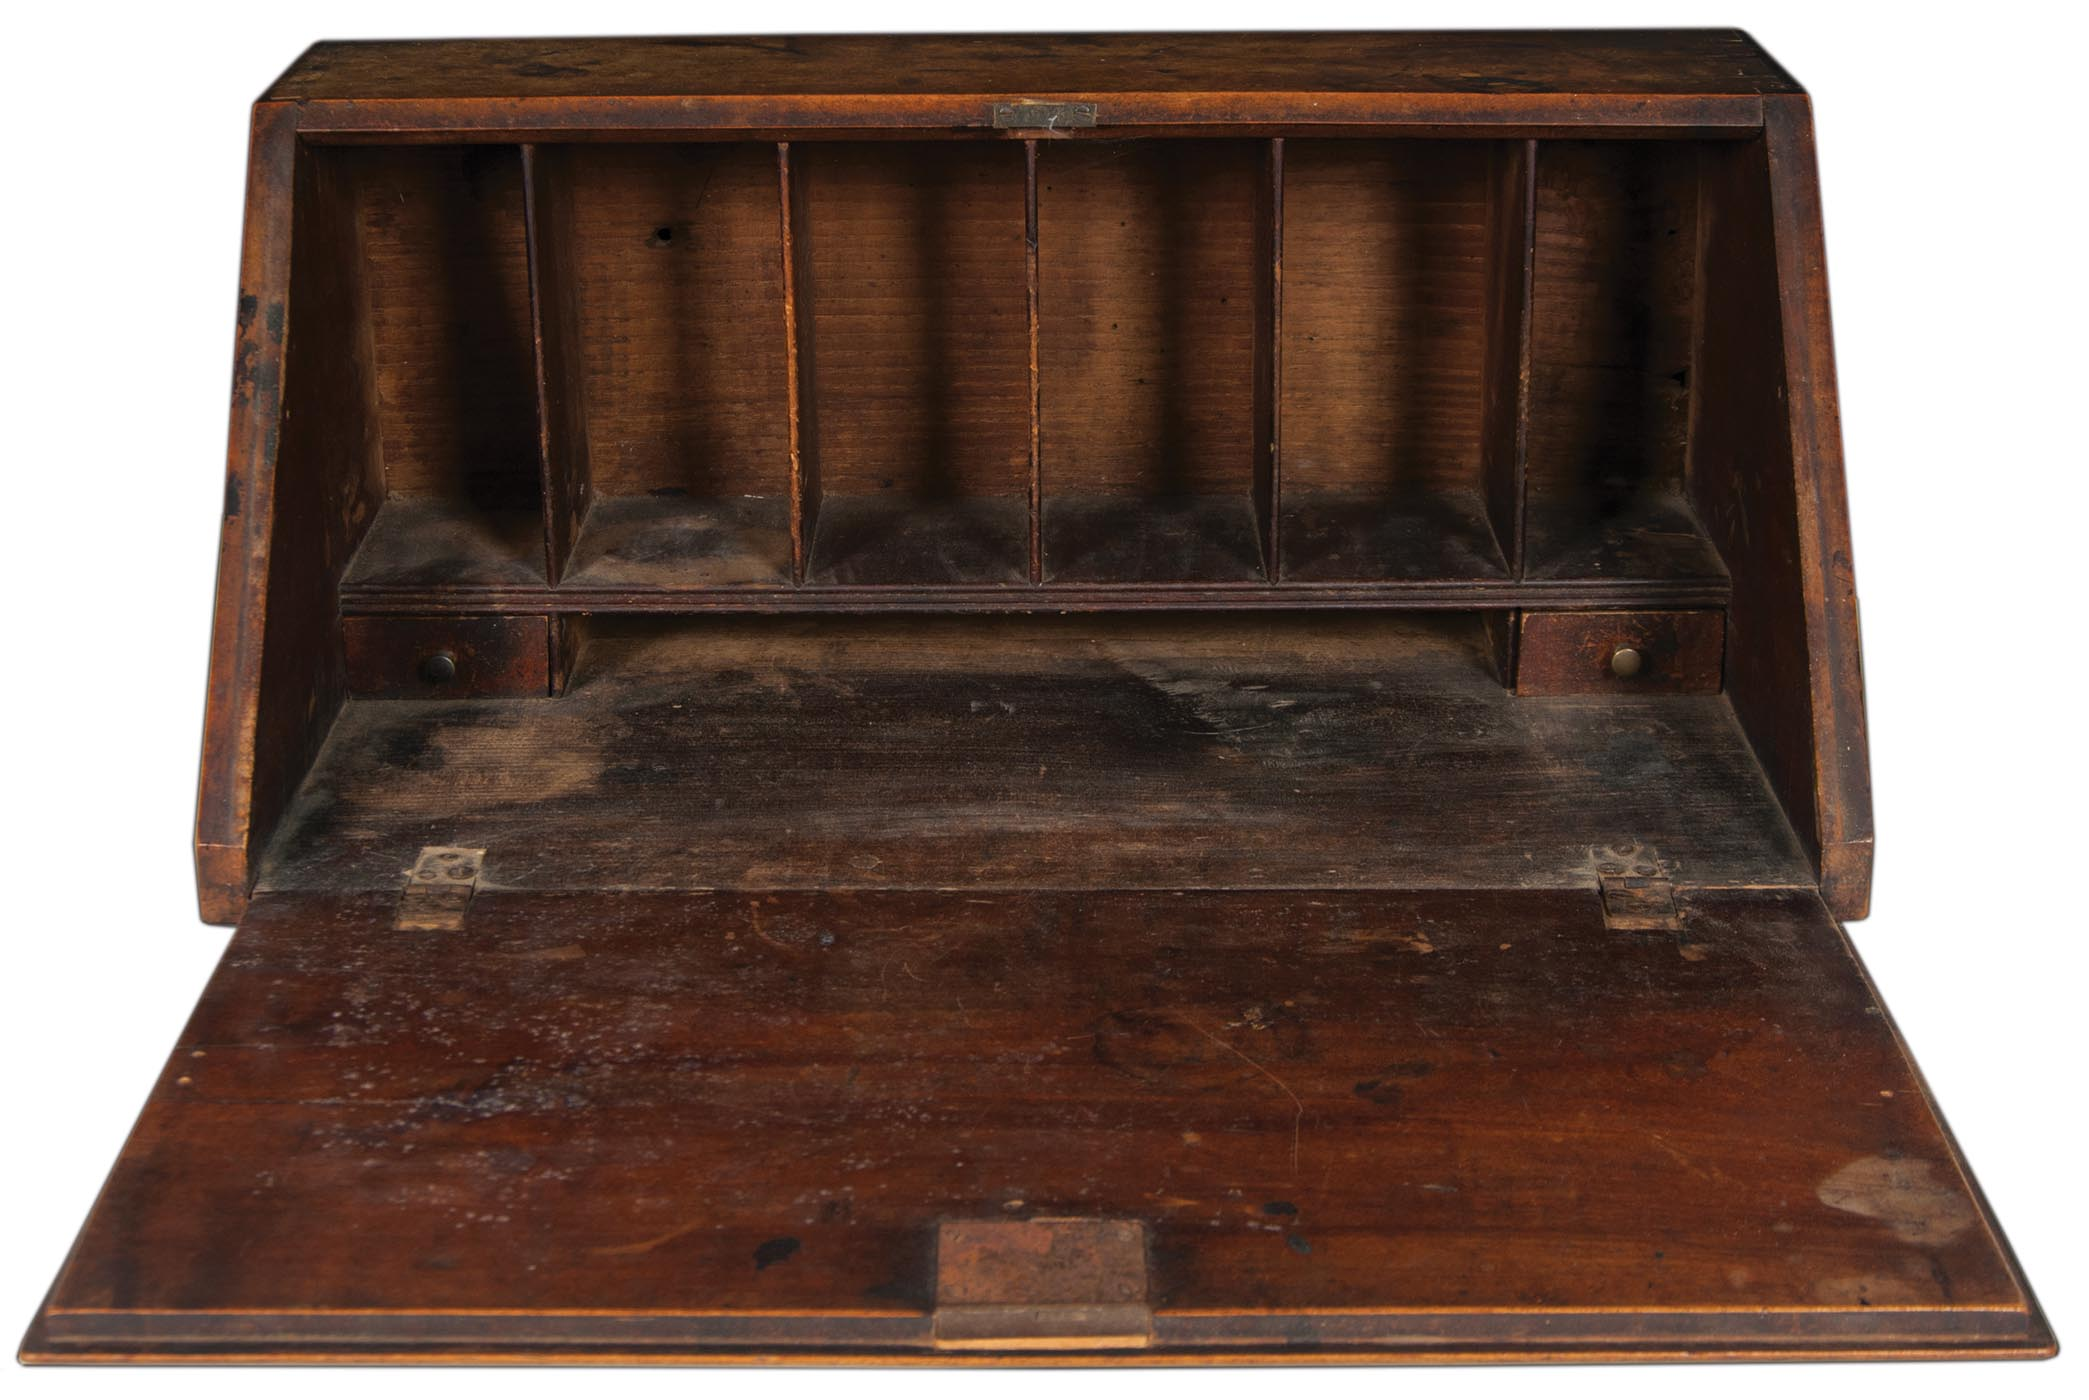 Lot 95 18th C Slant Lid Table Top Desk